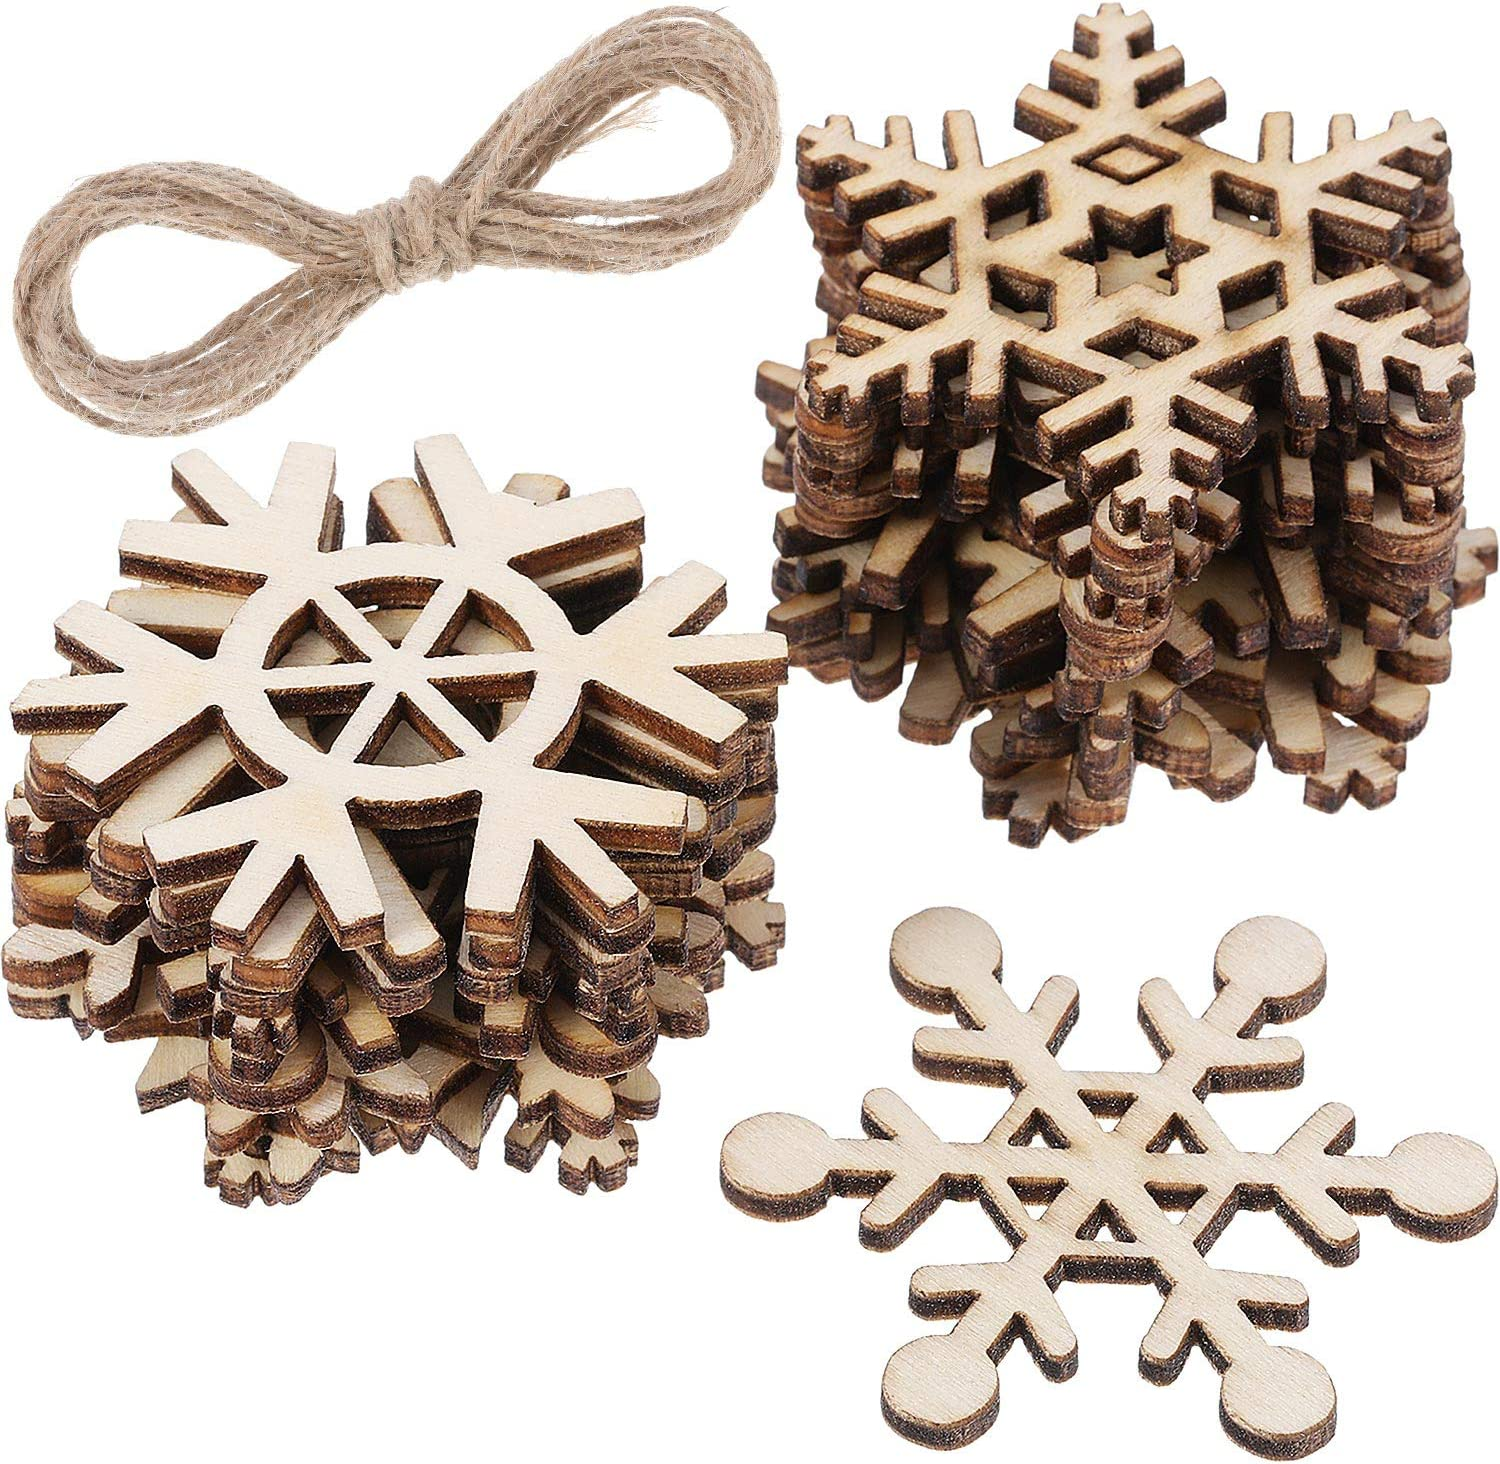 Hestya 50 Pieces Wooden Snowflake Ornaments Unfinished DIY Wood Snowflake Cutouts Christmas Tree Hanging Ornaments with Strings for DIY Christmas Decorations (8cm)